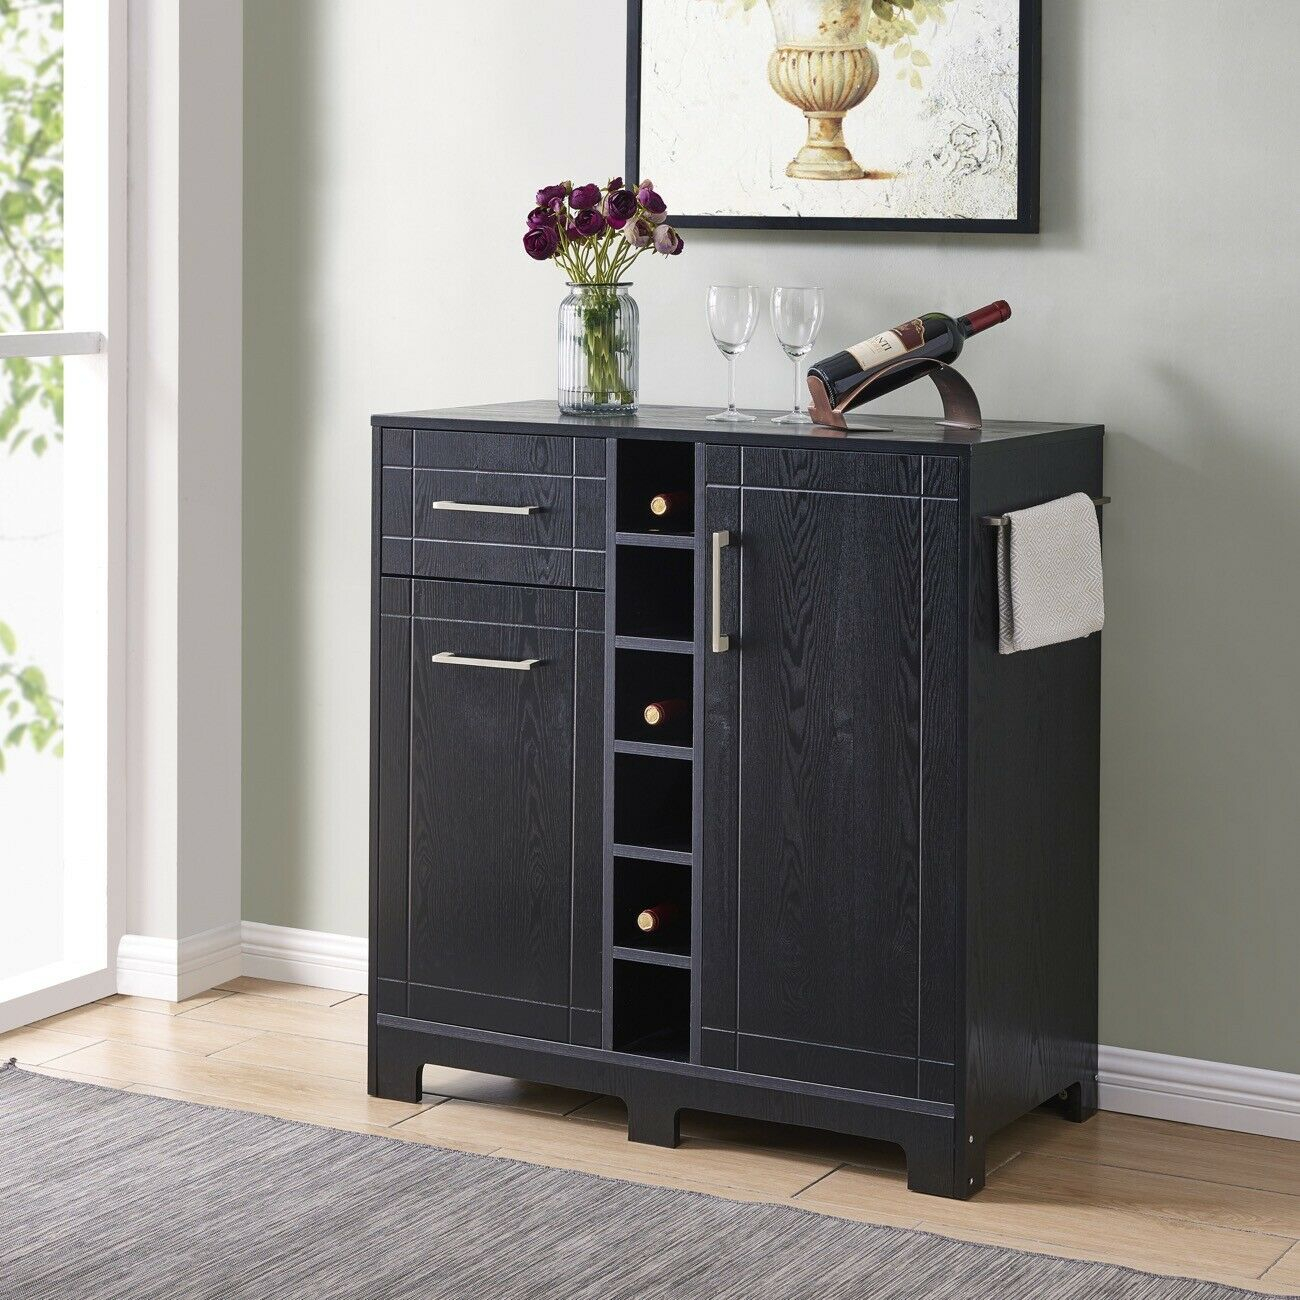 Modern Buffet Server Sideboard Bar Cabinet With Wine Storage And Racks,  Black With Regard To Modern Black Storage Buffets (View 4 of 30)